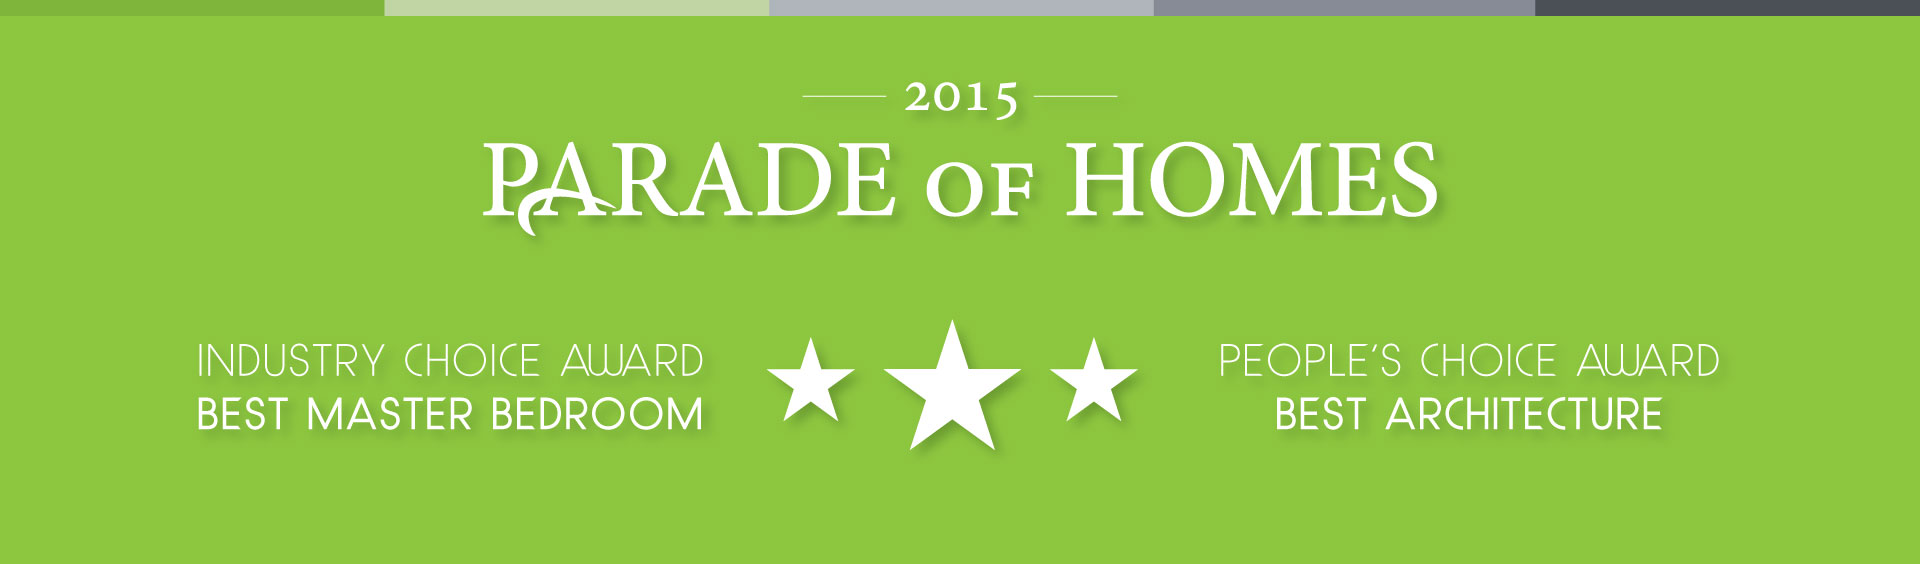 Modern Home Design & Build 2015 Parade of Homes Winner